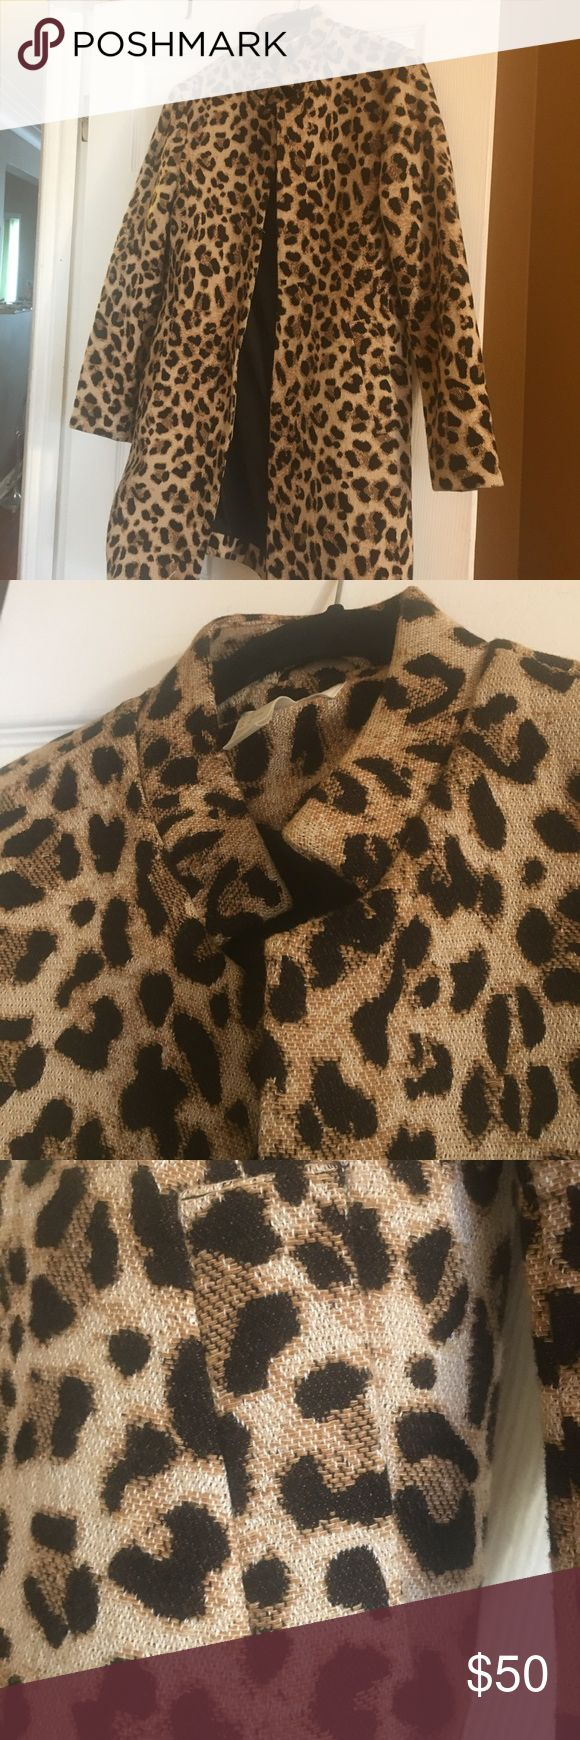 H&M Cheetah Print Coat H&M Cheetah Print Coat Worn once 10 H&M Jackets & Coats